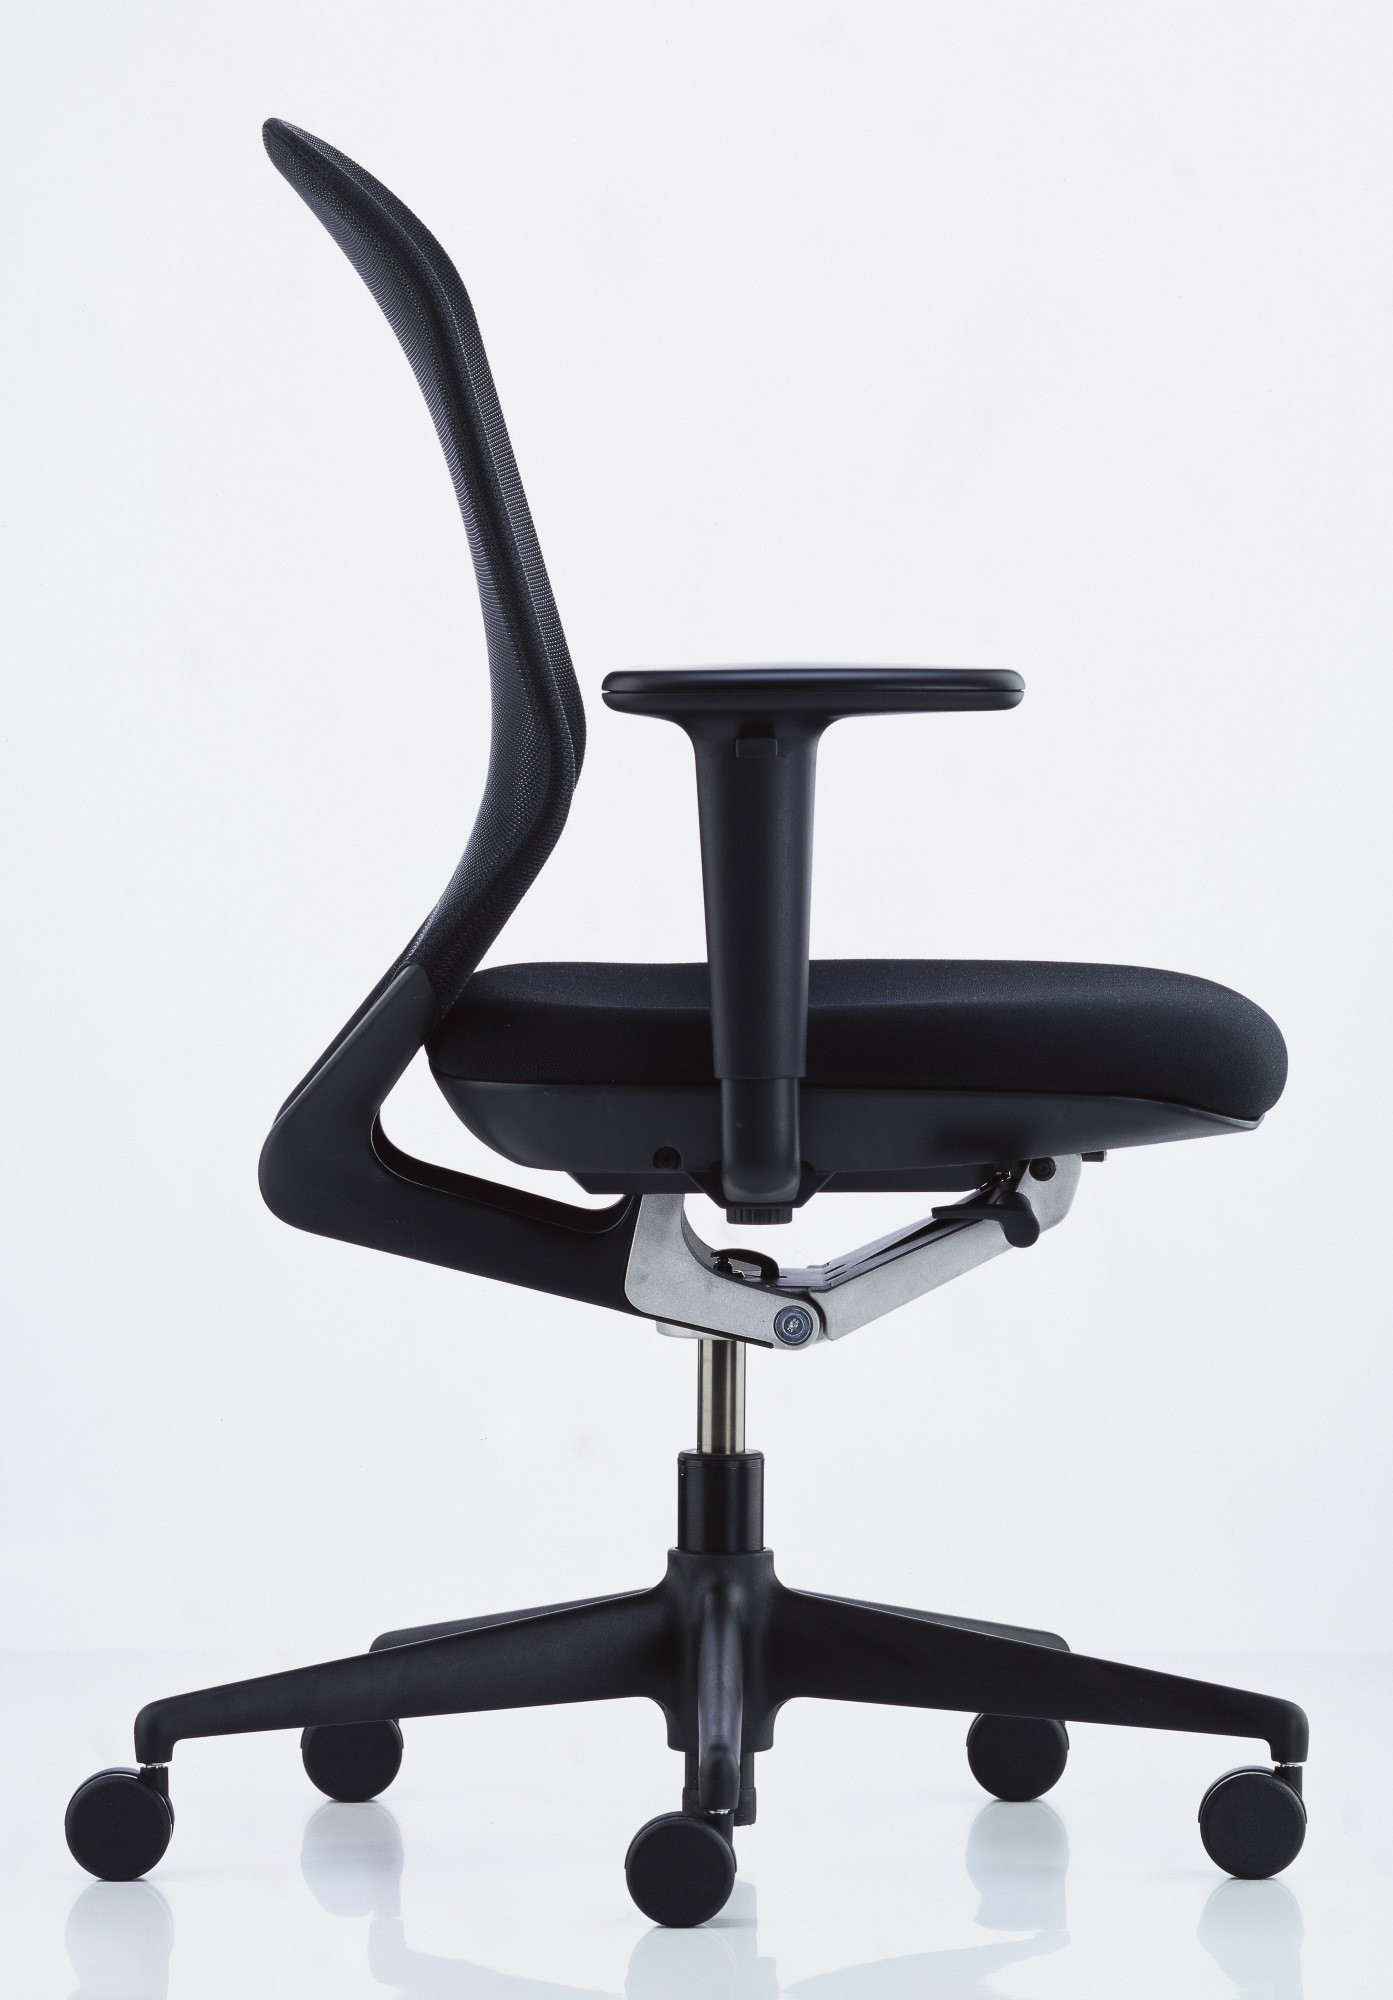 Vitra Office Chair Vitra Medapro Hi Quality Mesh Task Chairs Reupholstered In Black